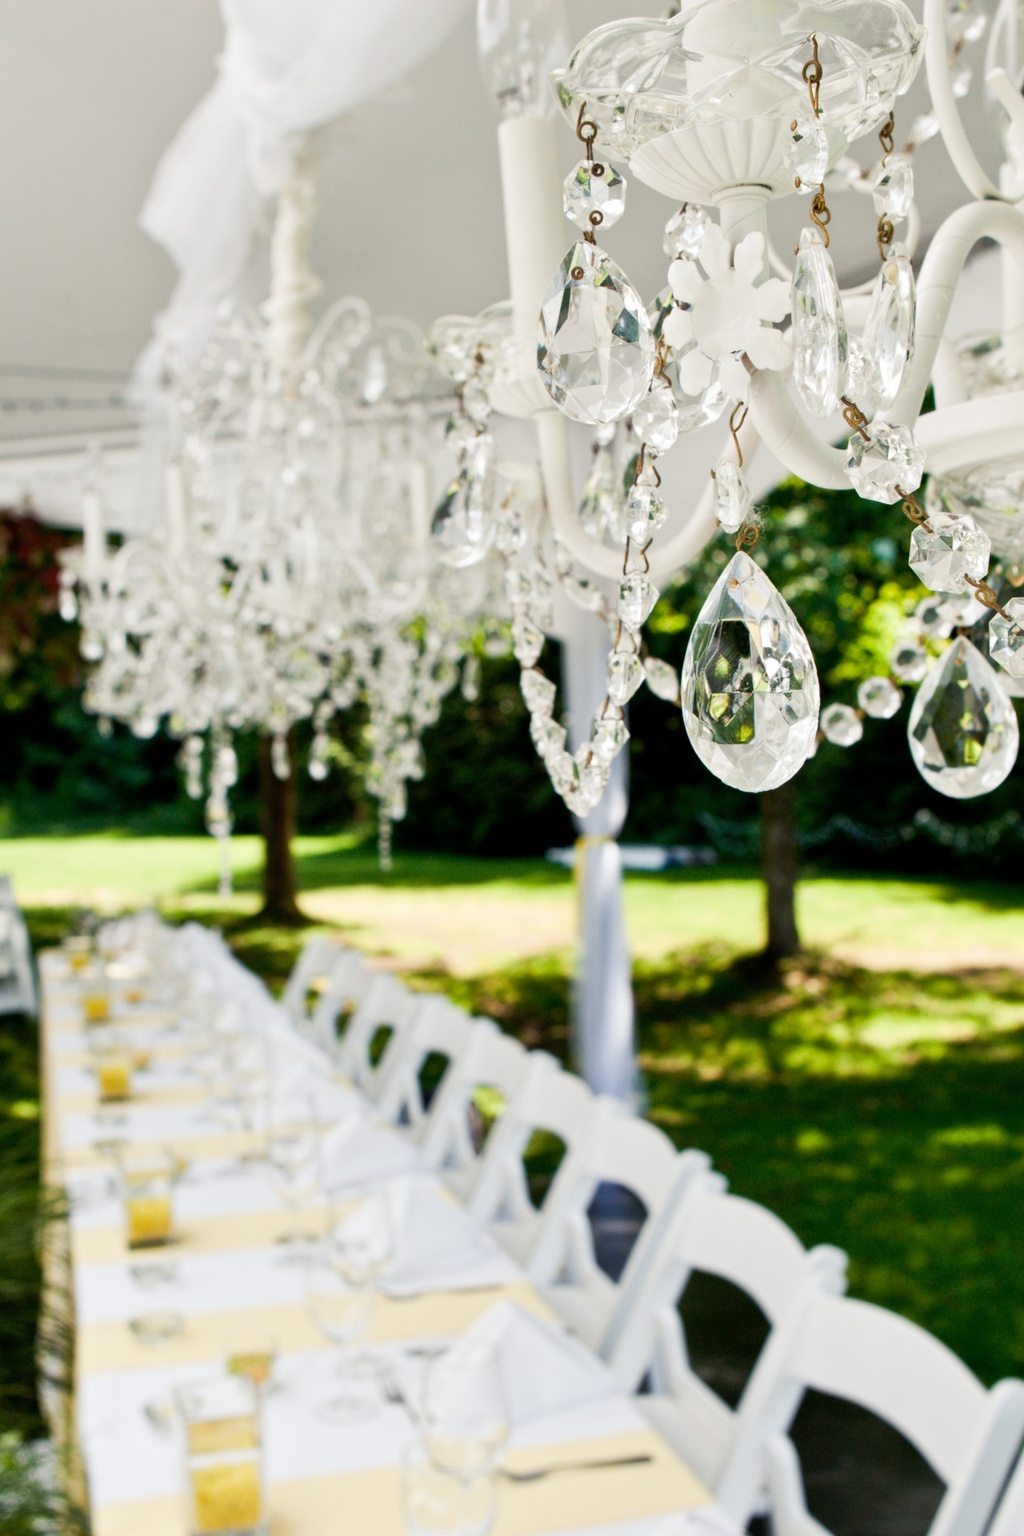 Romantic-outdoor-wedding-summer-weddings-chandeliers.full